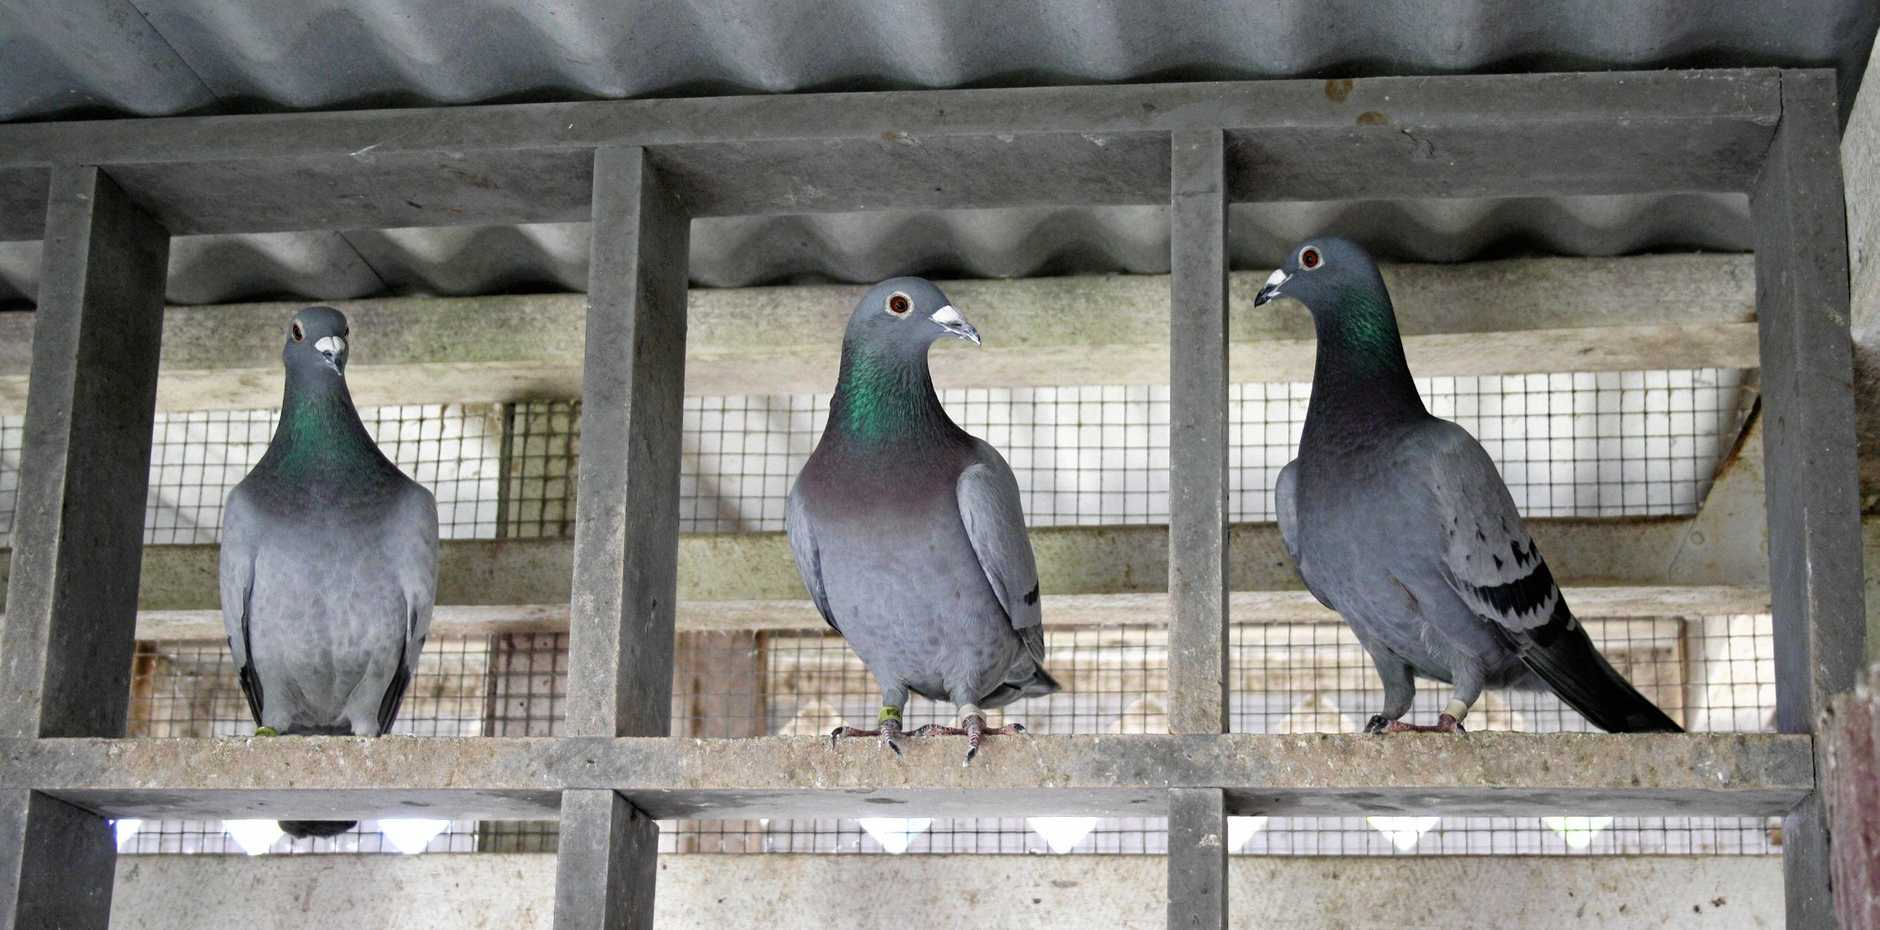 COO COO: Two levels of government have been at loggerheads over leasing arrangements and a pigeon problem.